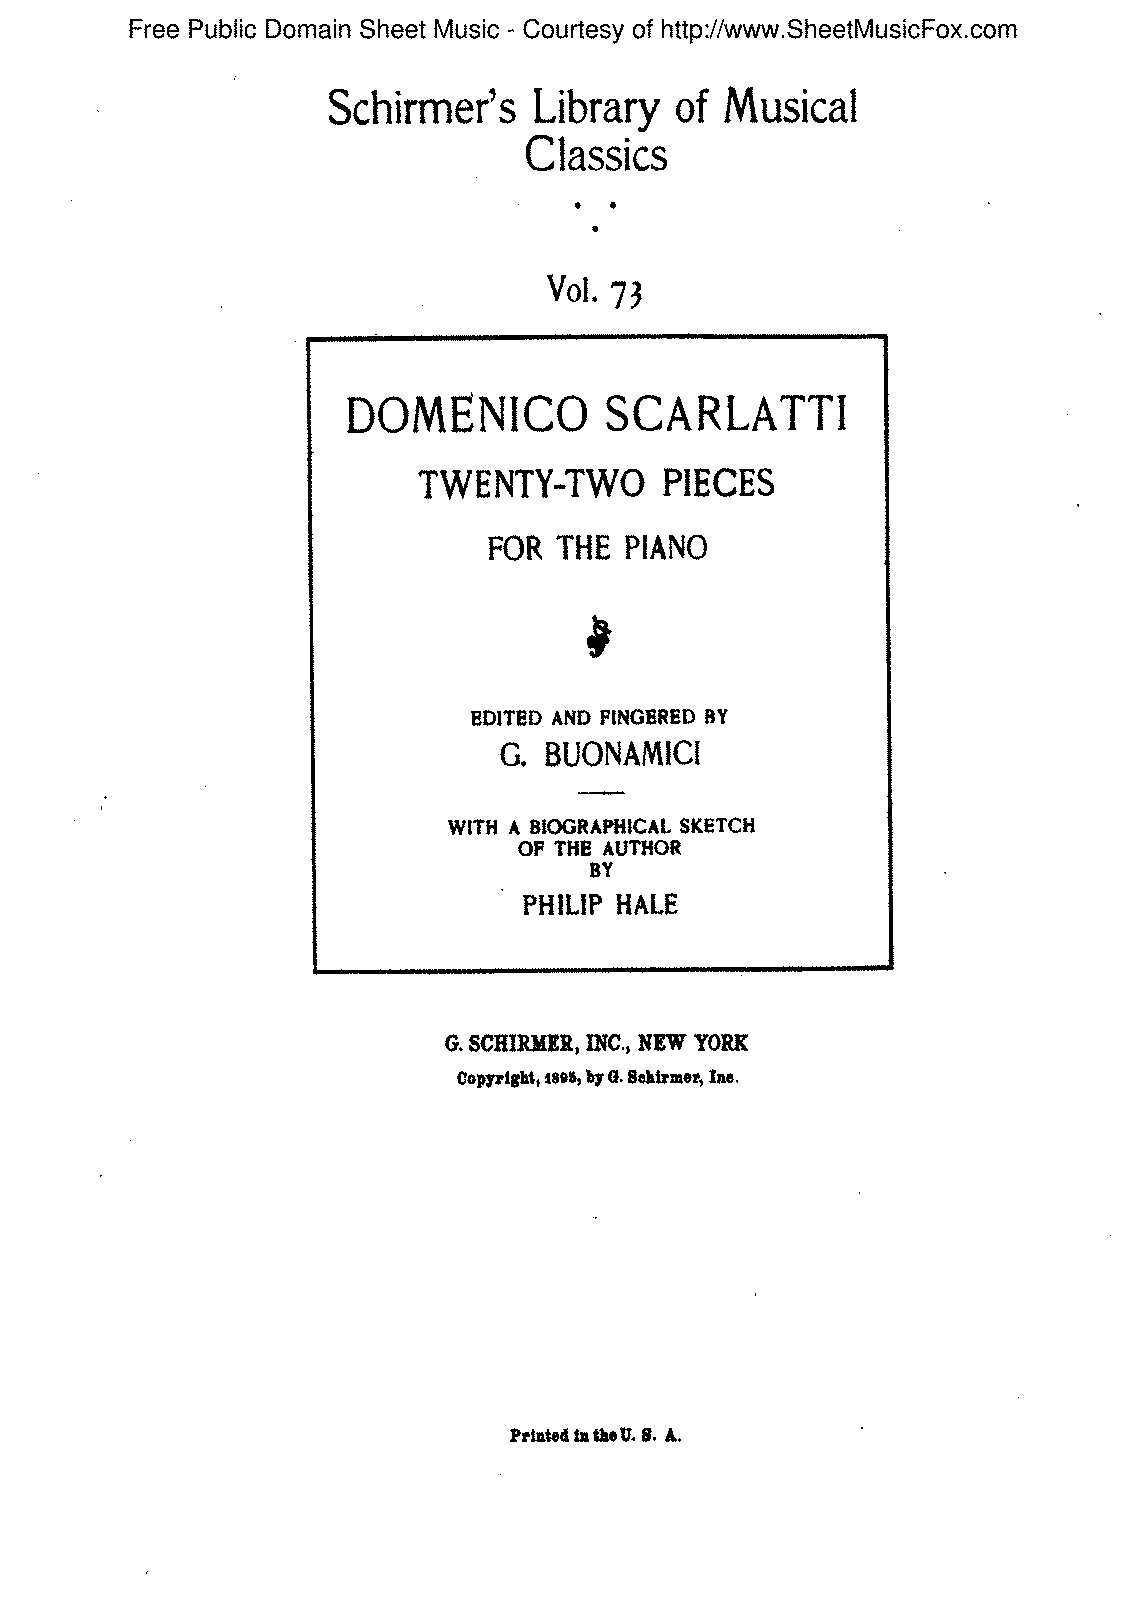 Scarlatti - Book of 22 Piano and Harpsichord Pieces - Title Page.pdf